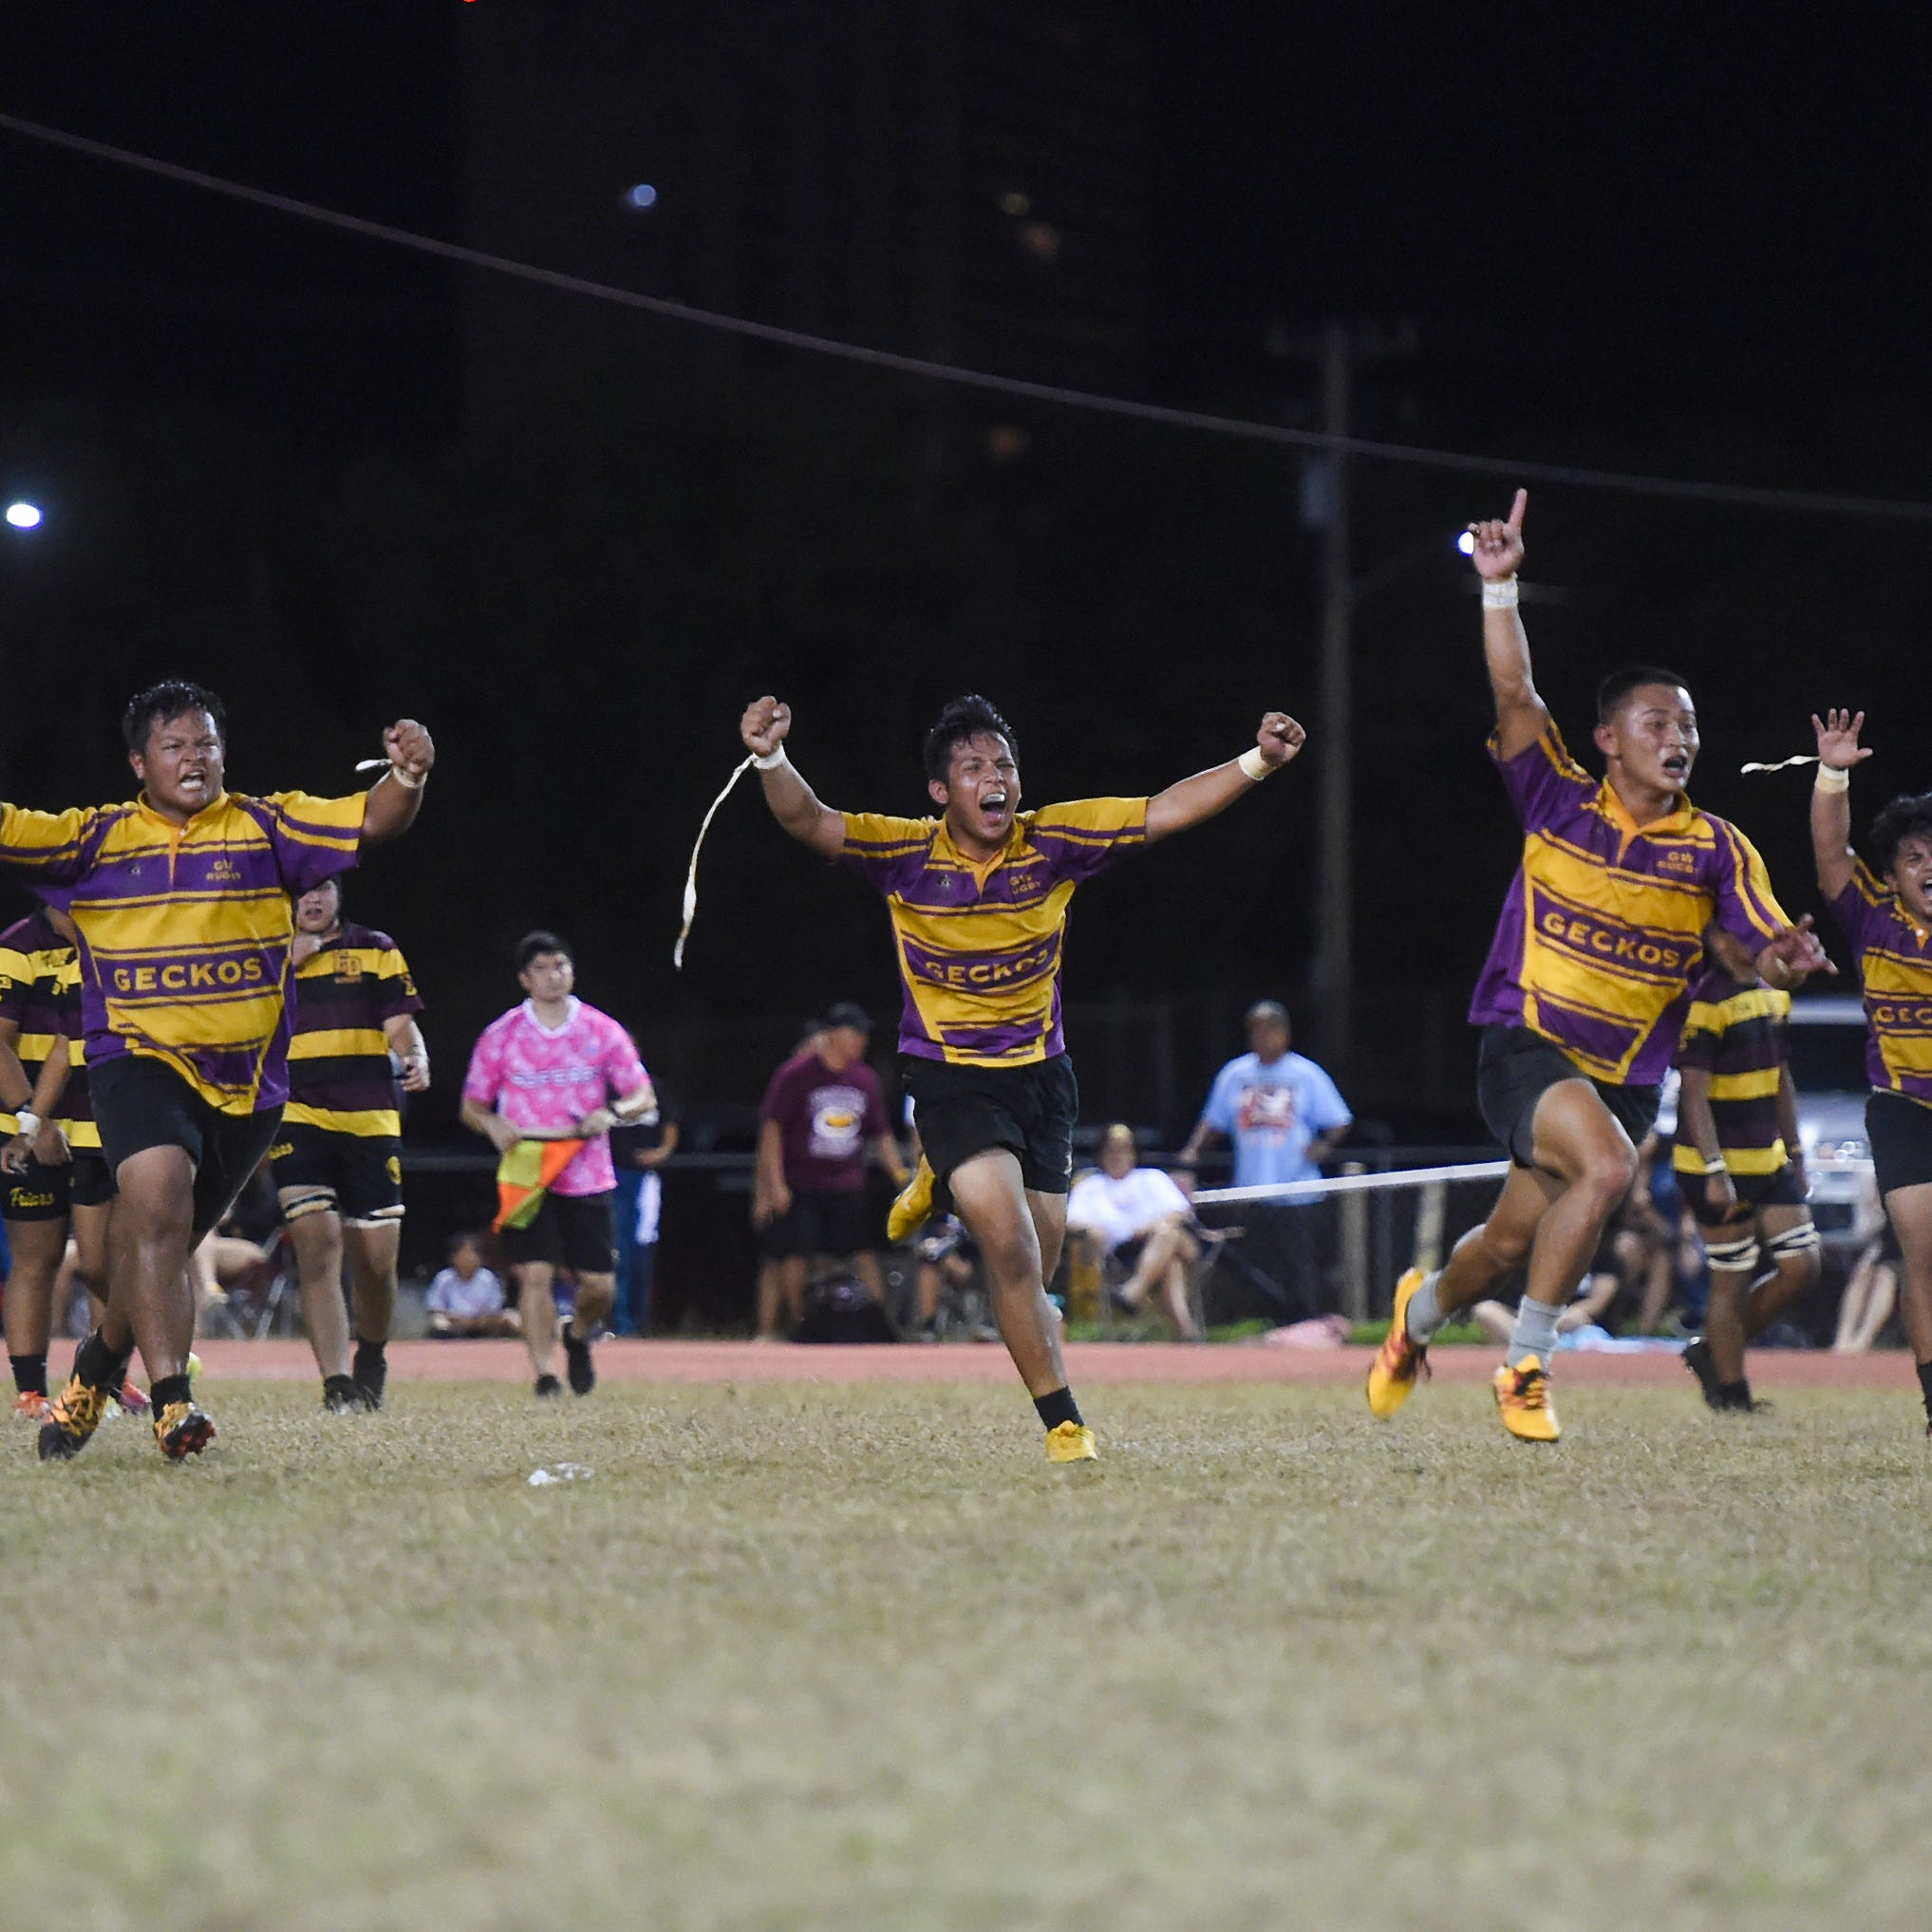 Geckos beat FD for Boys Rugby title